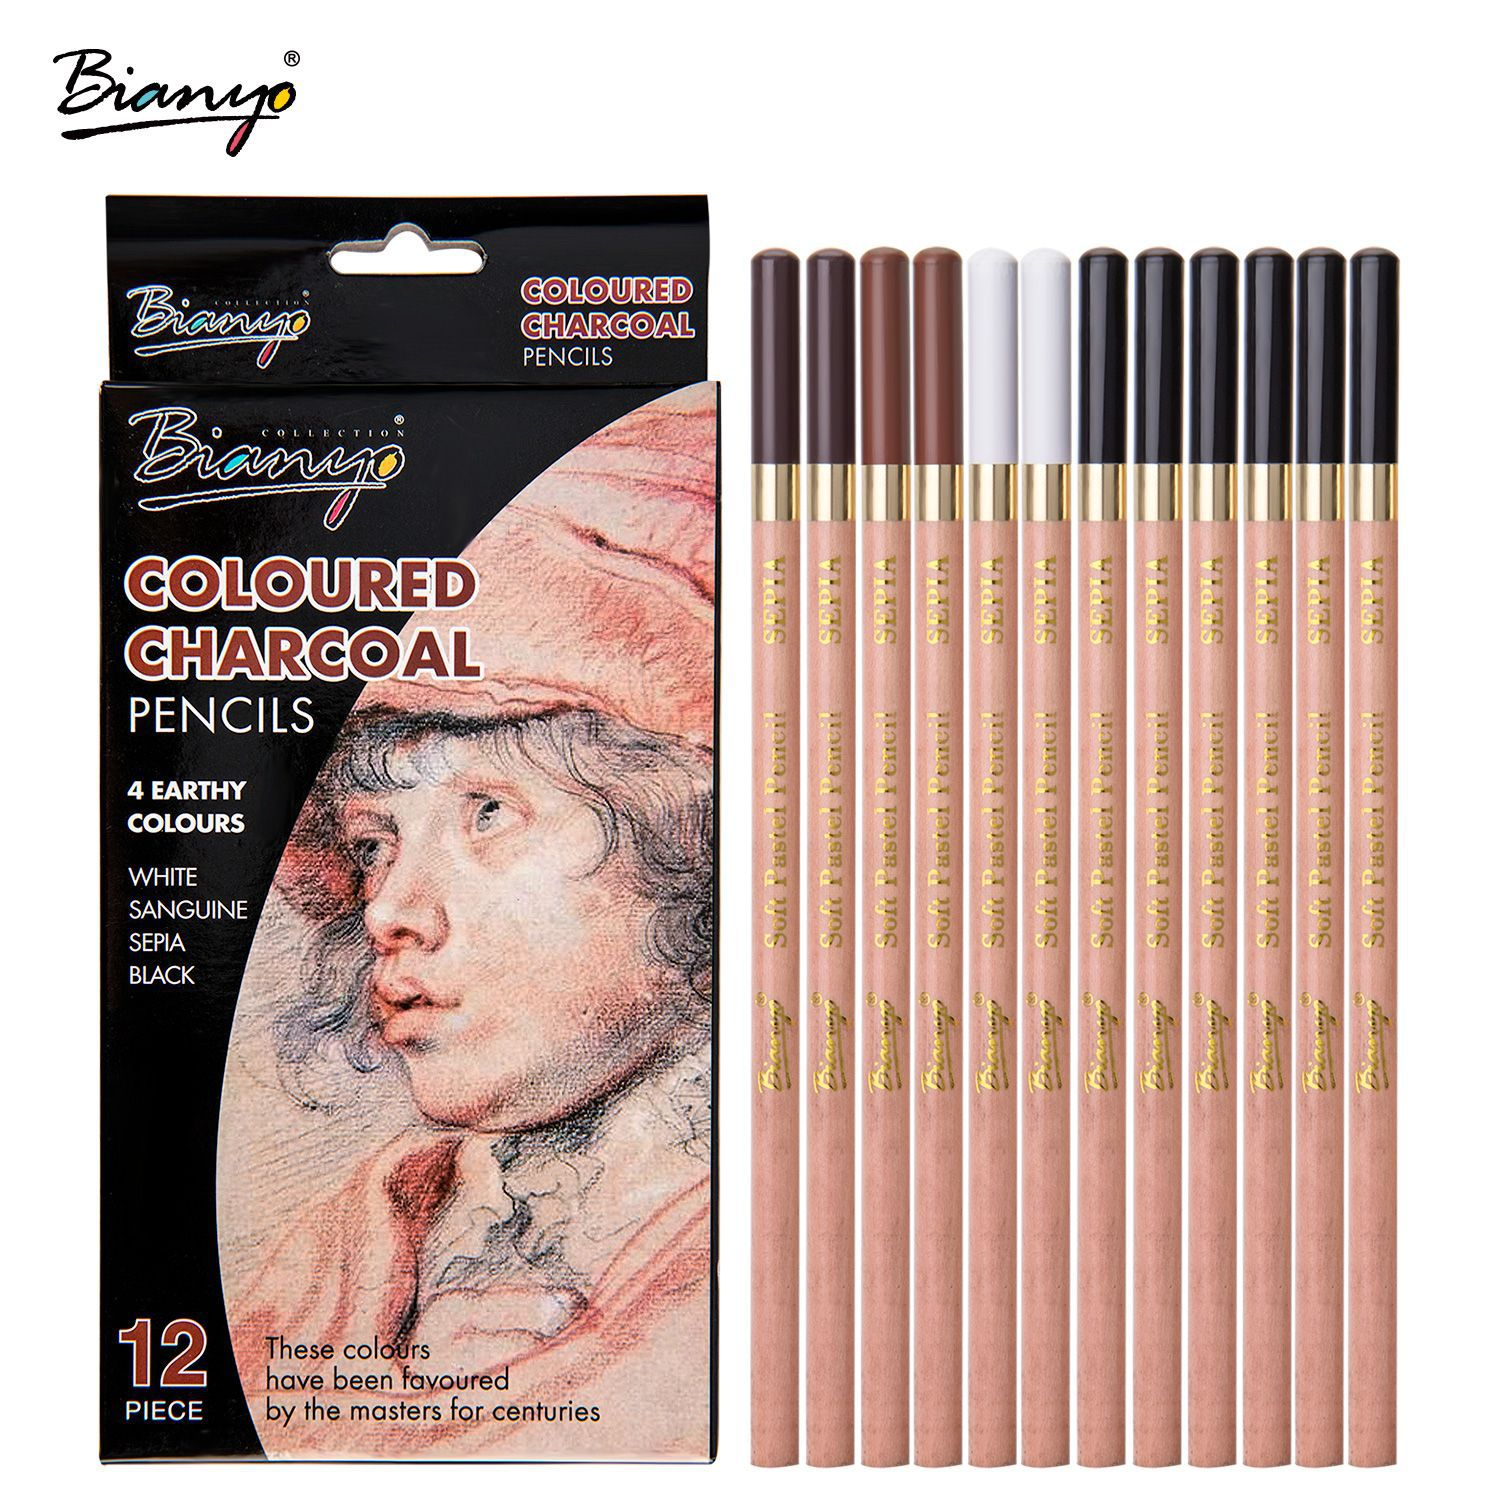 12 Pcs/Box Artist Soft Pastel Wood Pencils Crayon Charcoal Pencils Artiste Wooden Non Toxic Pencil For Sketching Drawing